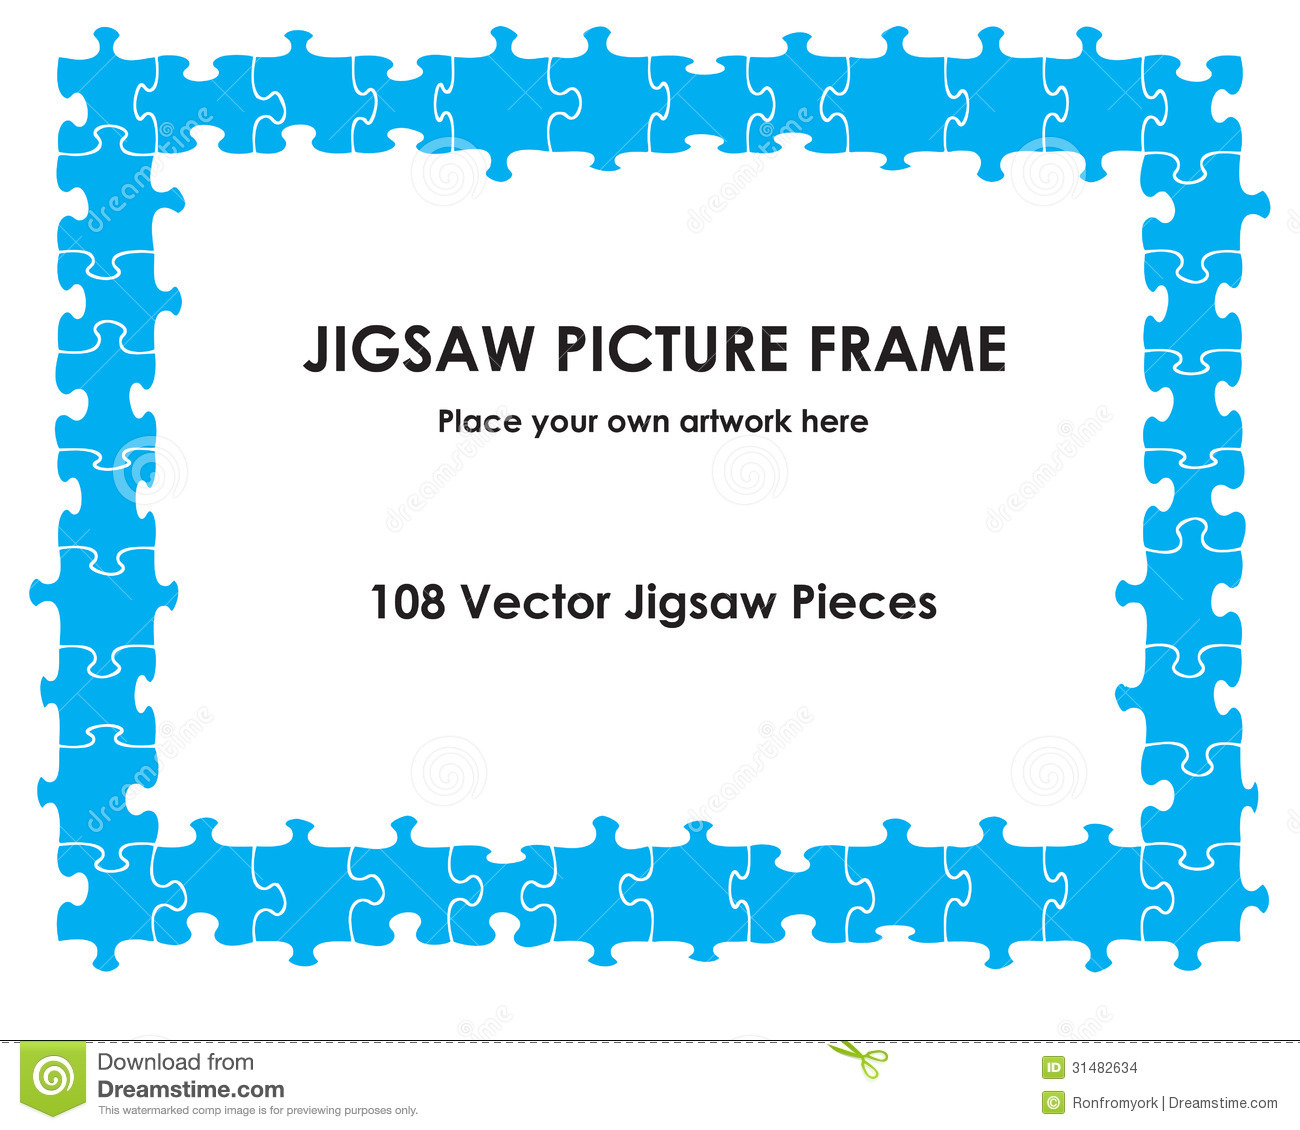 Jigsaw picture frame stock vector. Illustration of join - 31482634